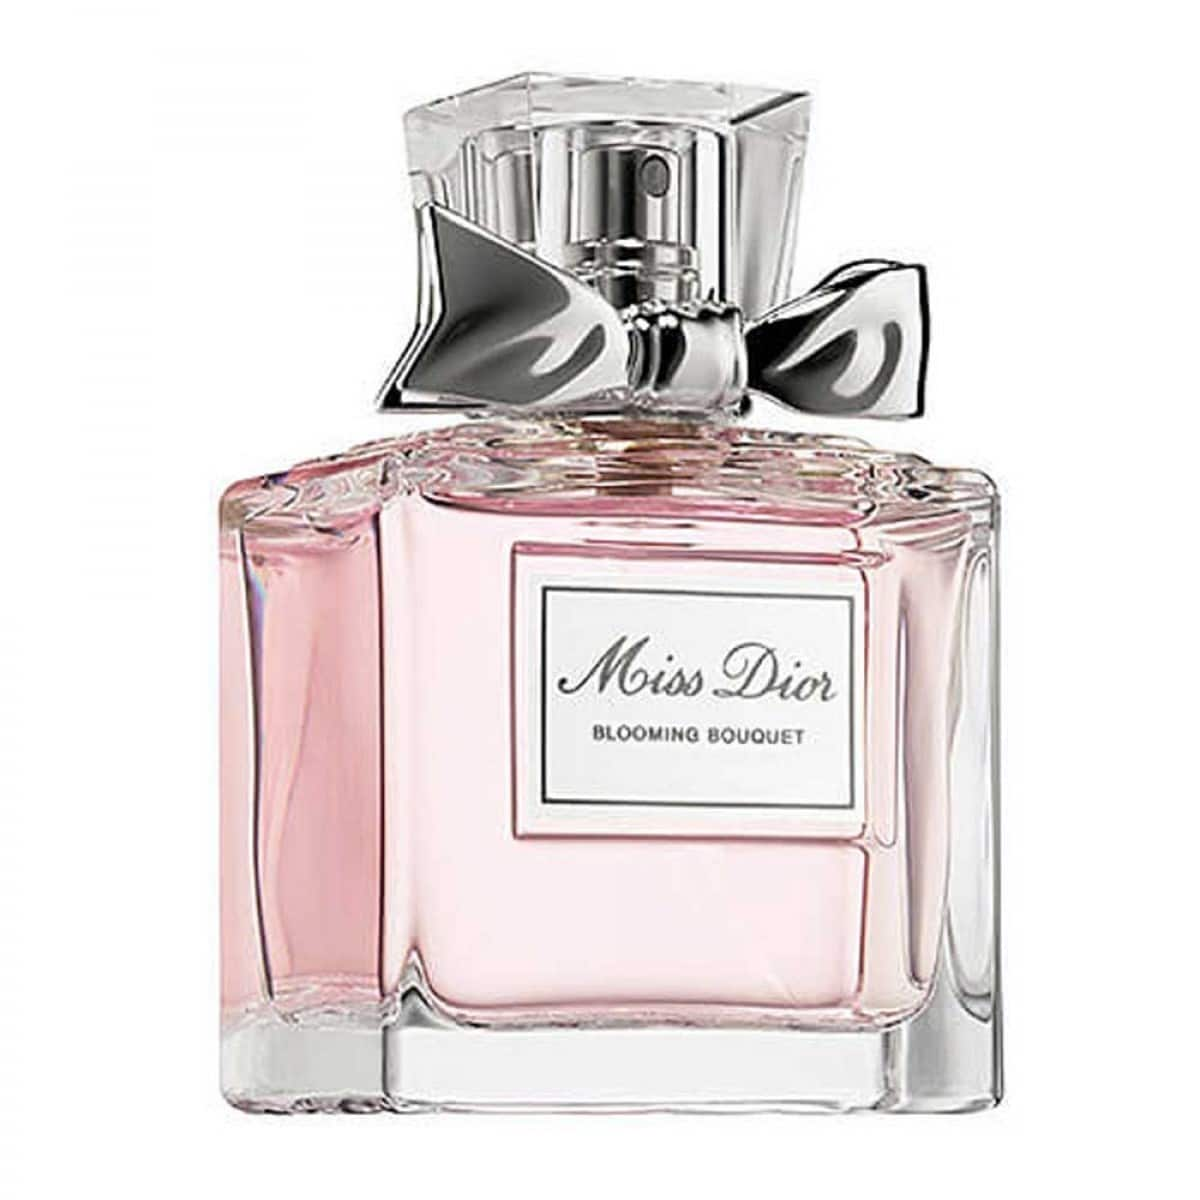 Shop christian dior miss dior blooming bouquet womens 17 ounce eau shop christian dior miss dior blooming bouquet womens 17 ounce eau de toilette spray free shipping today overstock 9006924 izmirmasajfo